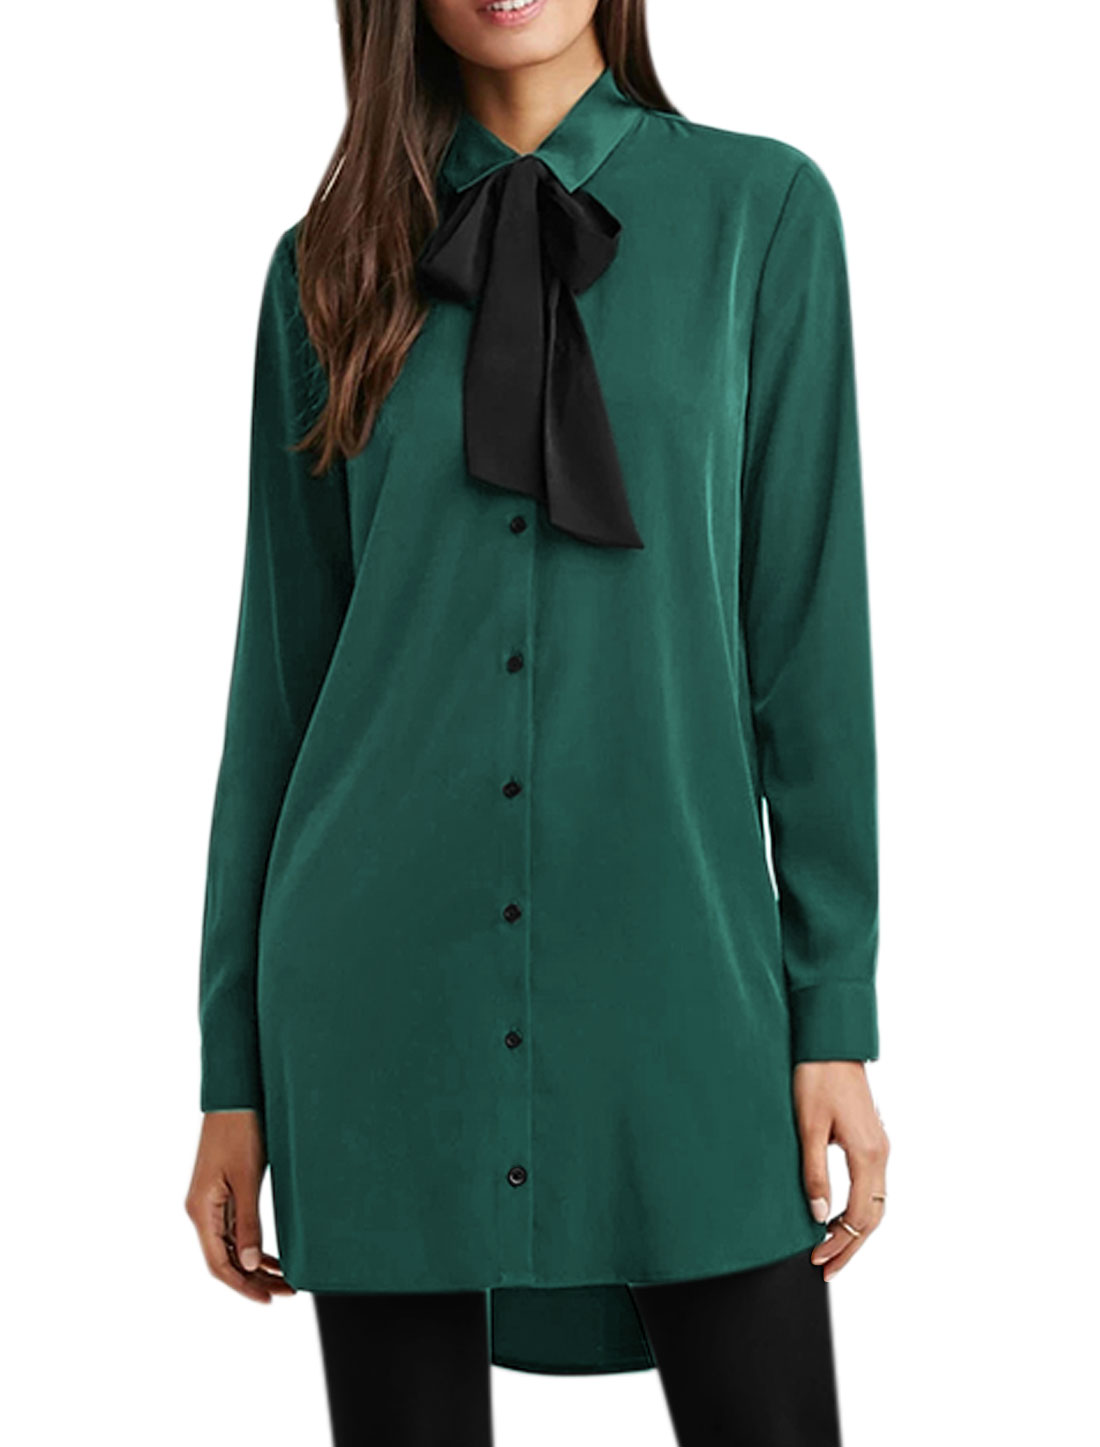 Women Point Collar Semi Sheer High Low Tunic Shirt w Bow Tie Green M